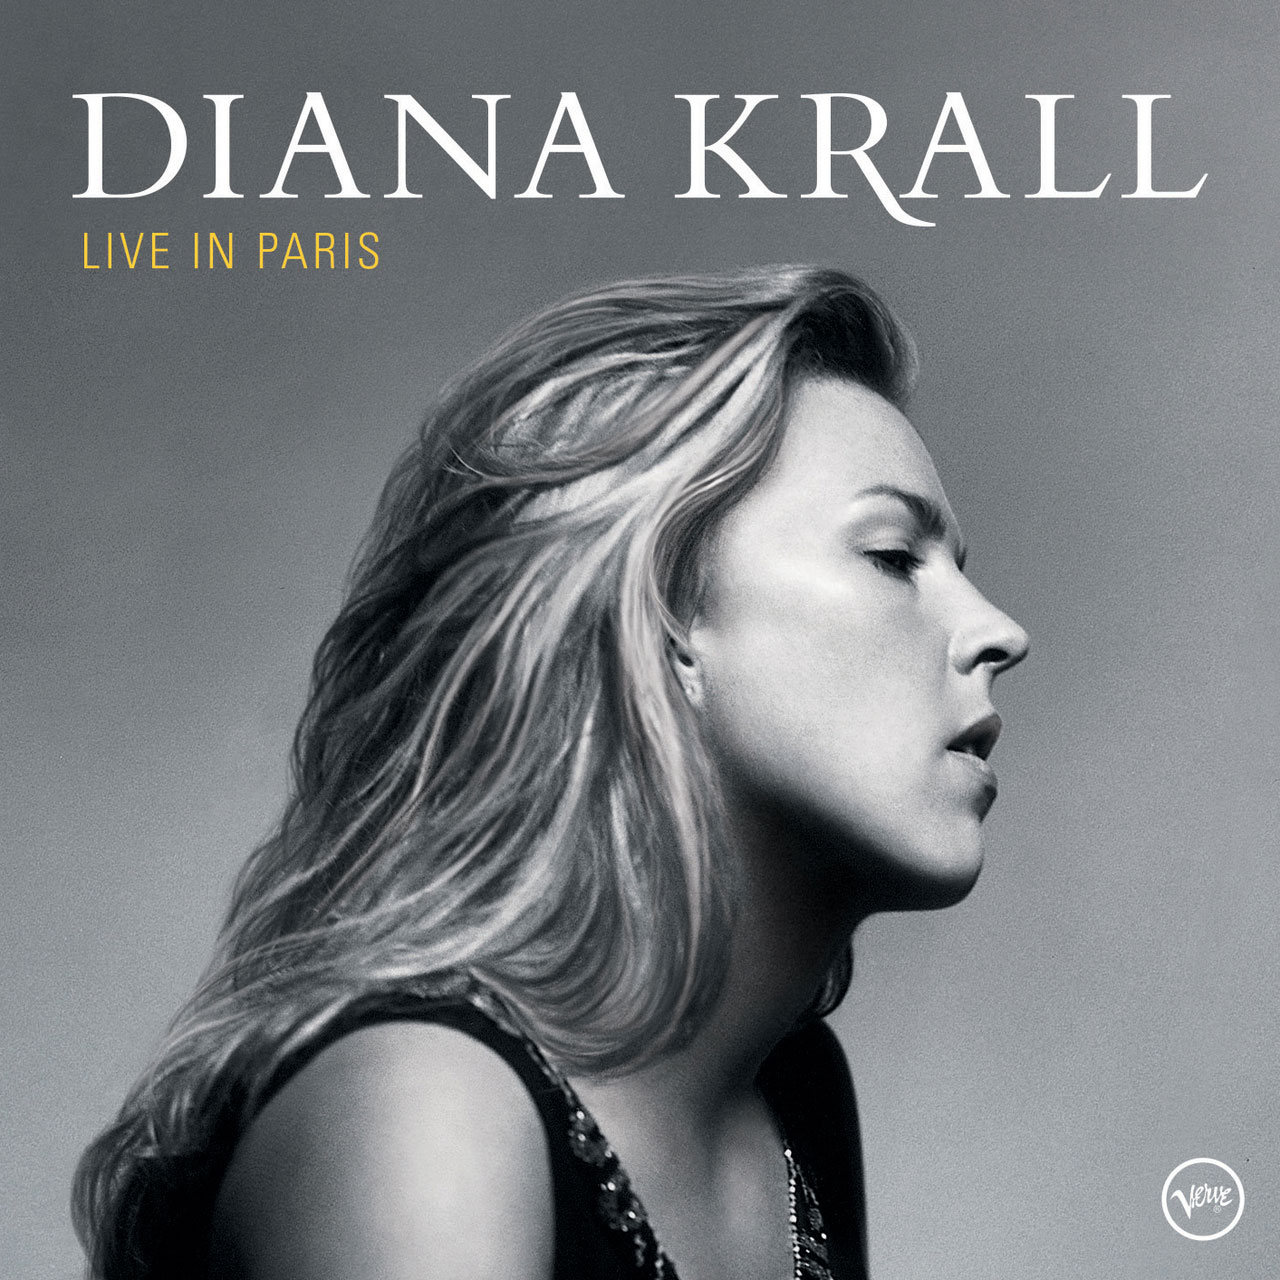 Diana Krall Live In Paris Numbered Limited Edition Hybrid Stereo Japanese Import SACD